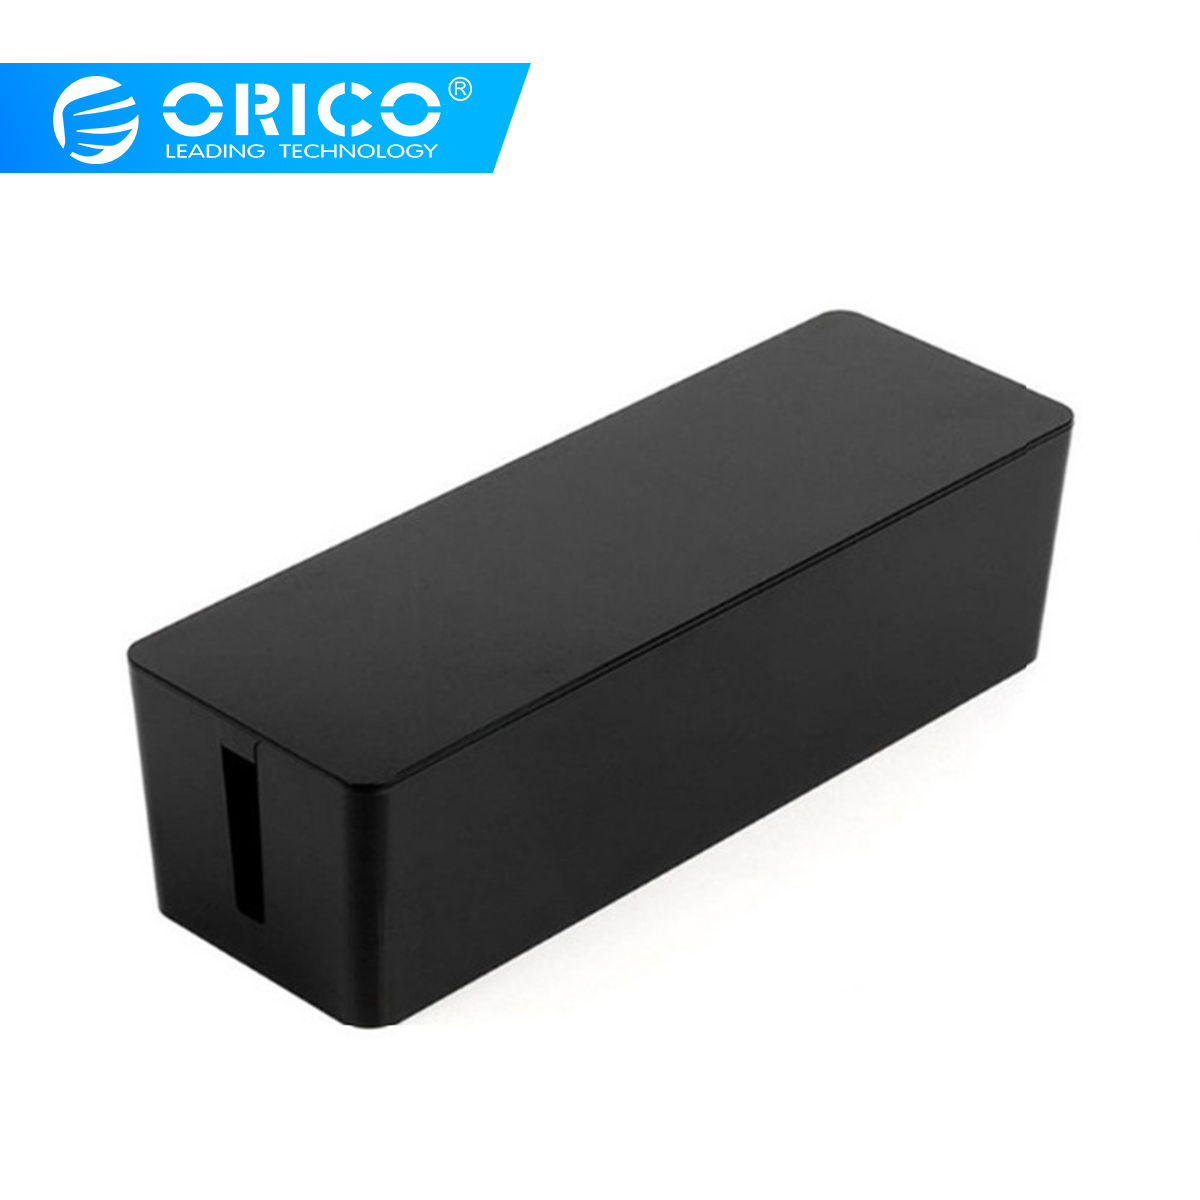 ORICO PB3218 Fireproof Socket Storage Boxes  Storage Box Desk  Dustproof Protection Holder Safety Socket